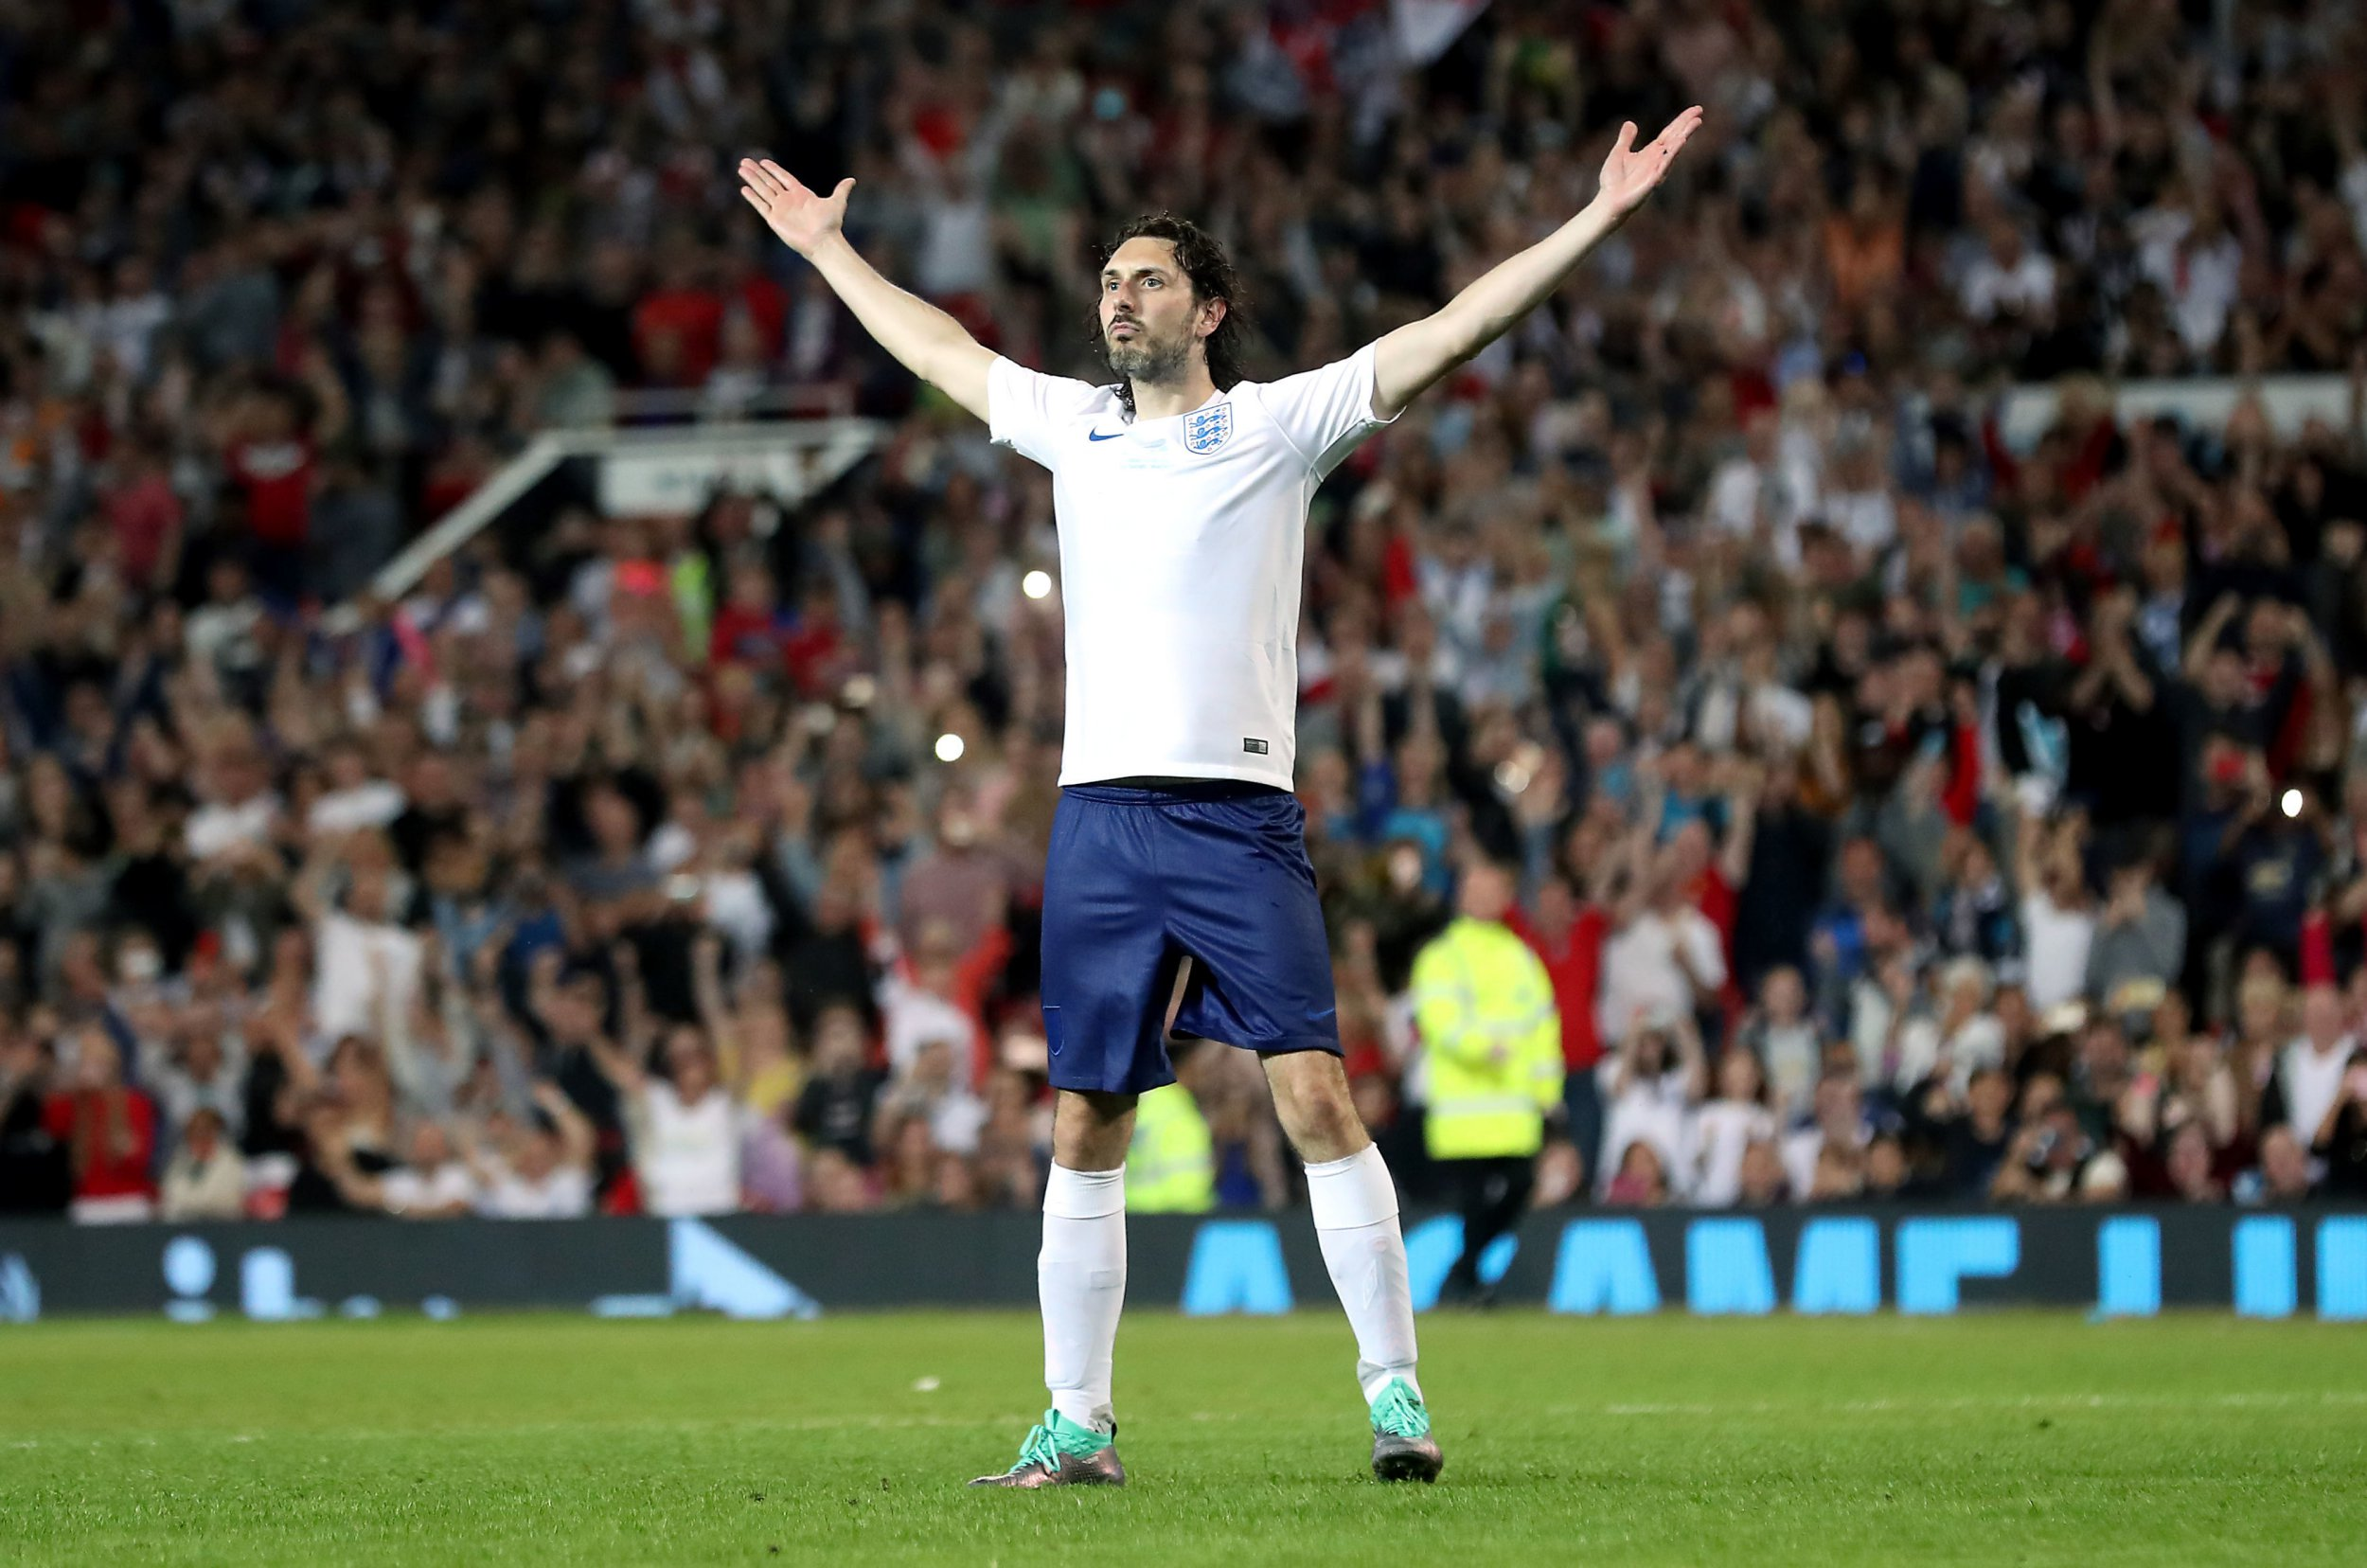 England's Blake Harrison celebrate scoring the winning penalty in the shootout during the UNICEF Soccer Aid match at Old Trafford, Manchester. PRESS ASSOCIATION Photo. Picture date: Sunday June 10, 2018. See PA story SOCCER Aid. Photo credit should read: Martin Rickett/PA Wire.